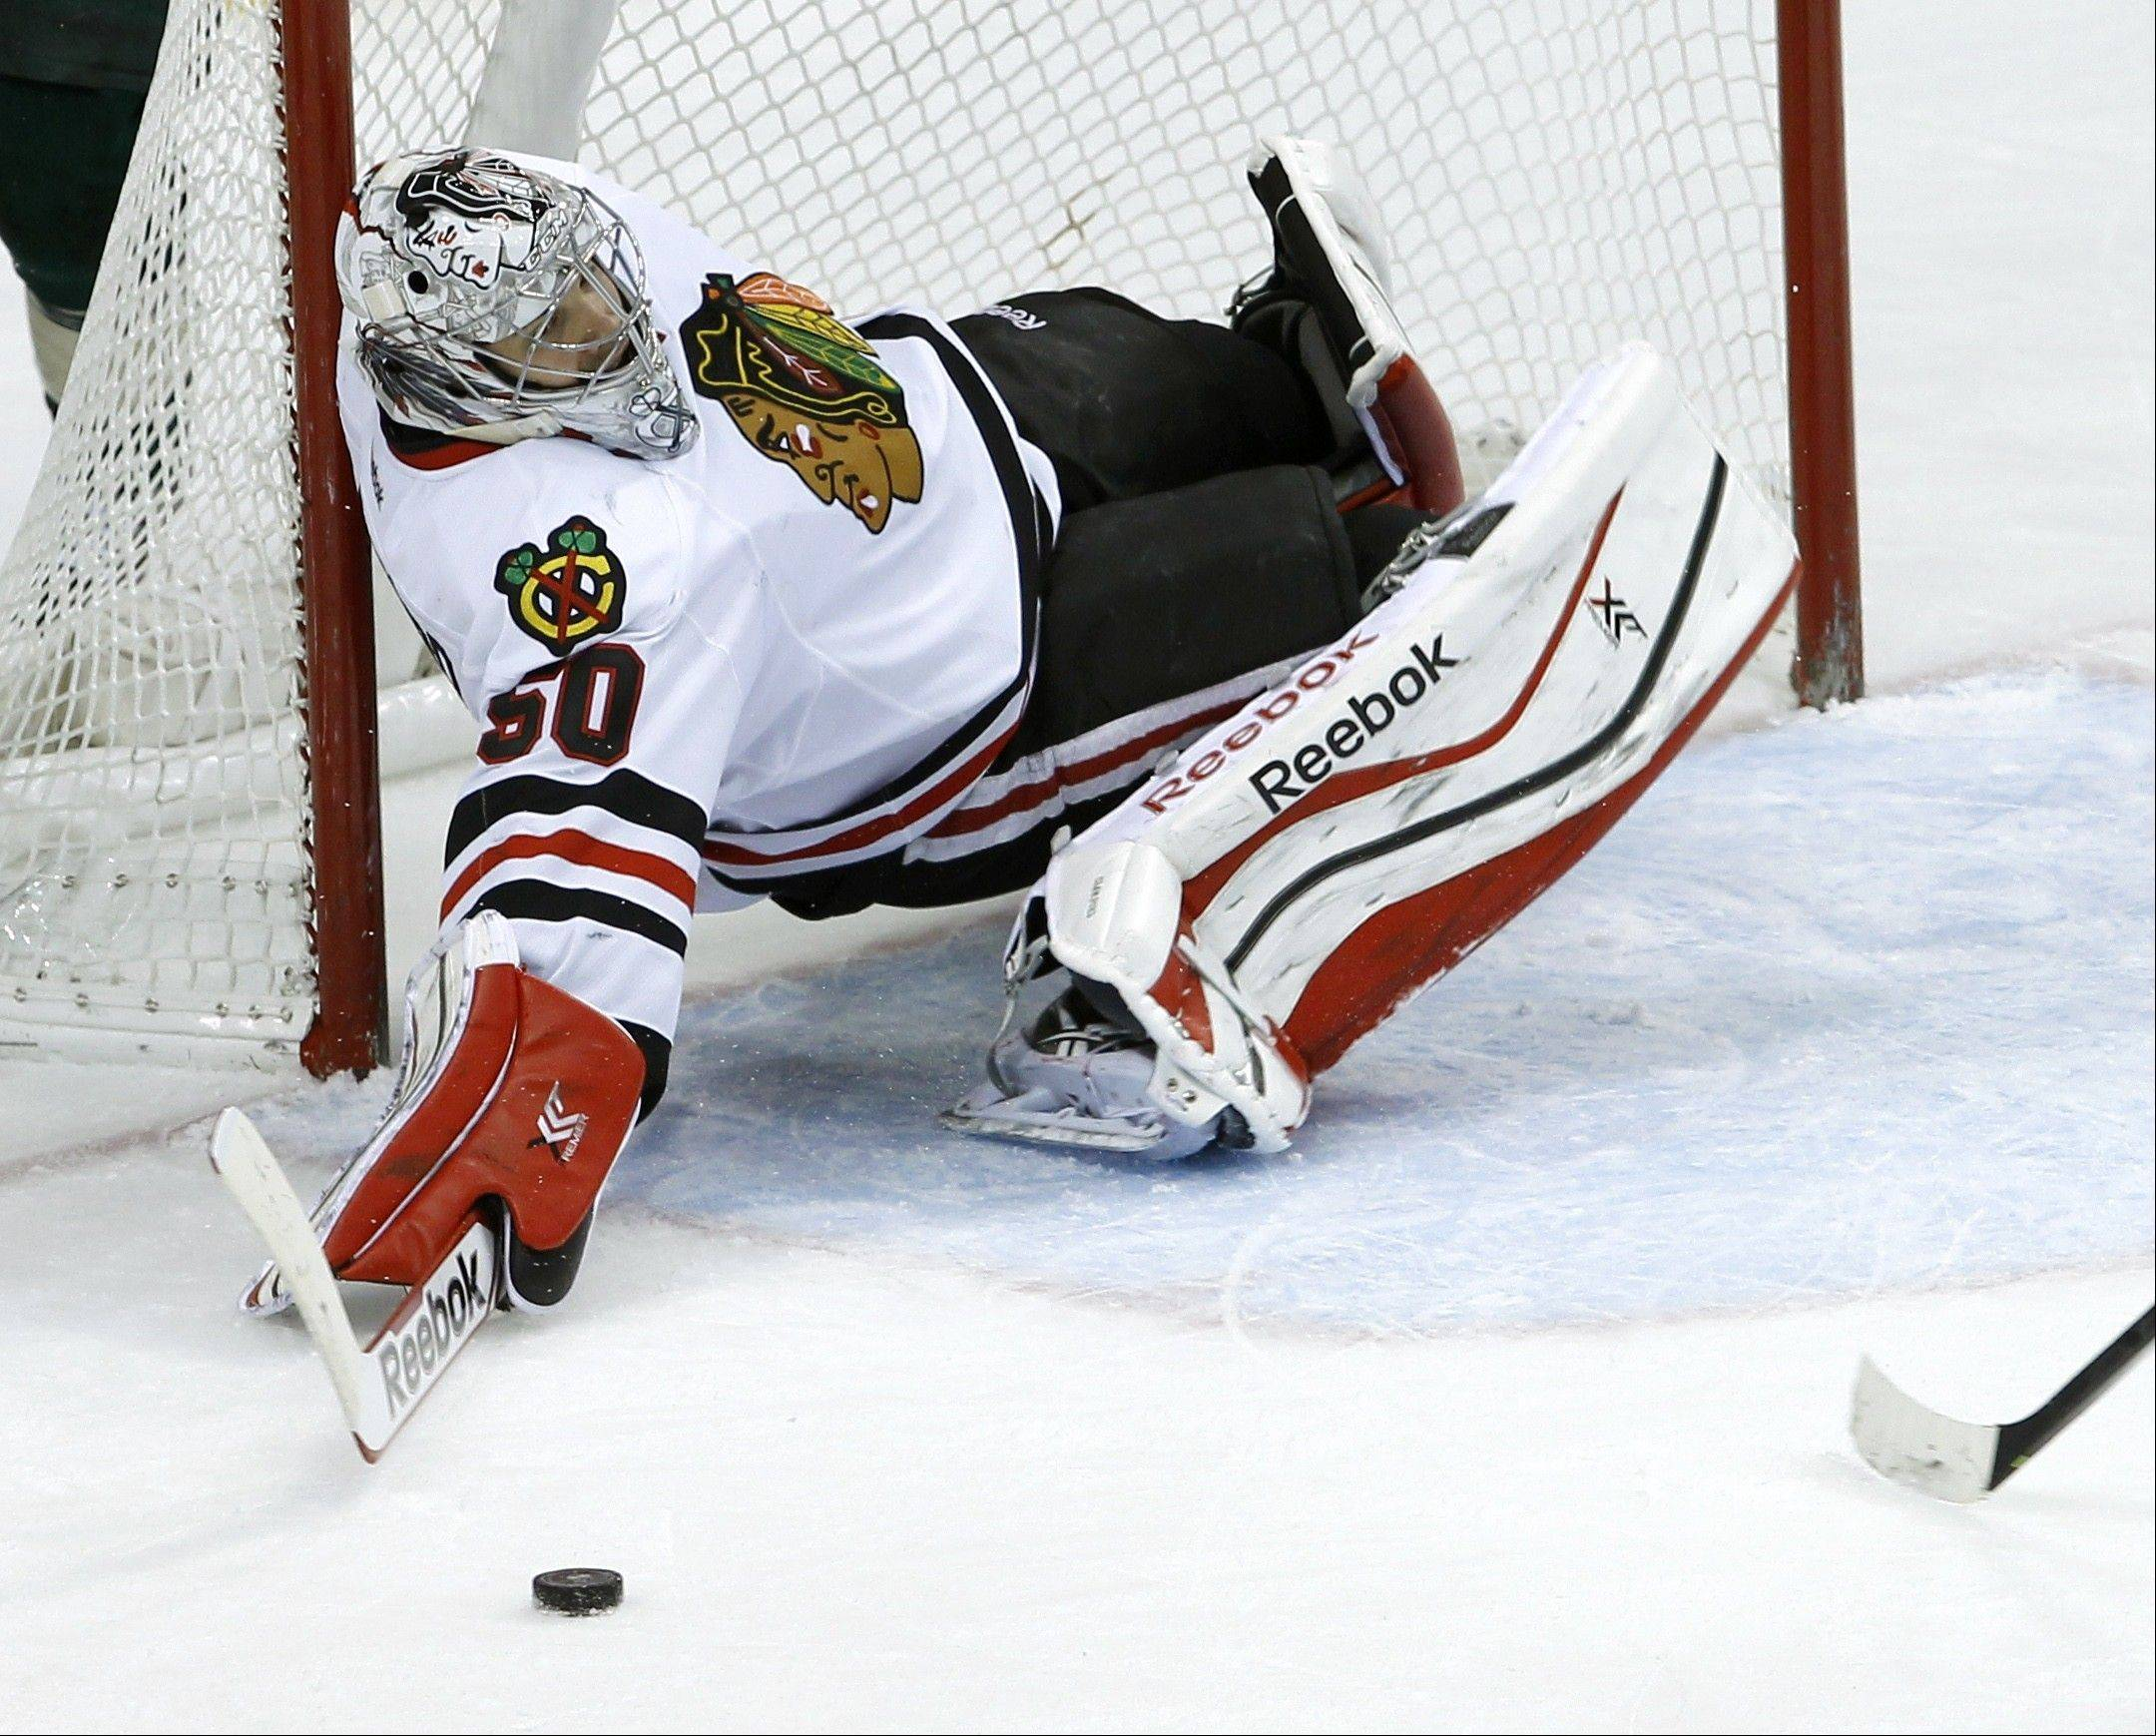 Goalie Corey Crawford and the Blackhawks were upended late in the third period Thursday when the host Wild netted a pair of late goals to earn a victory.